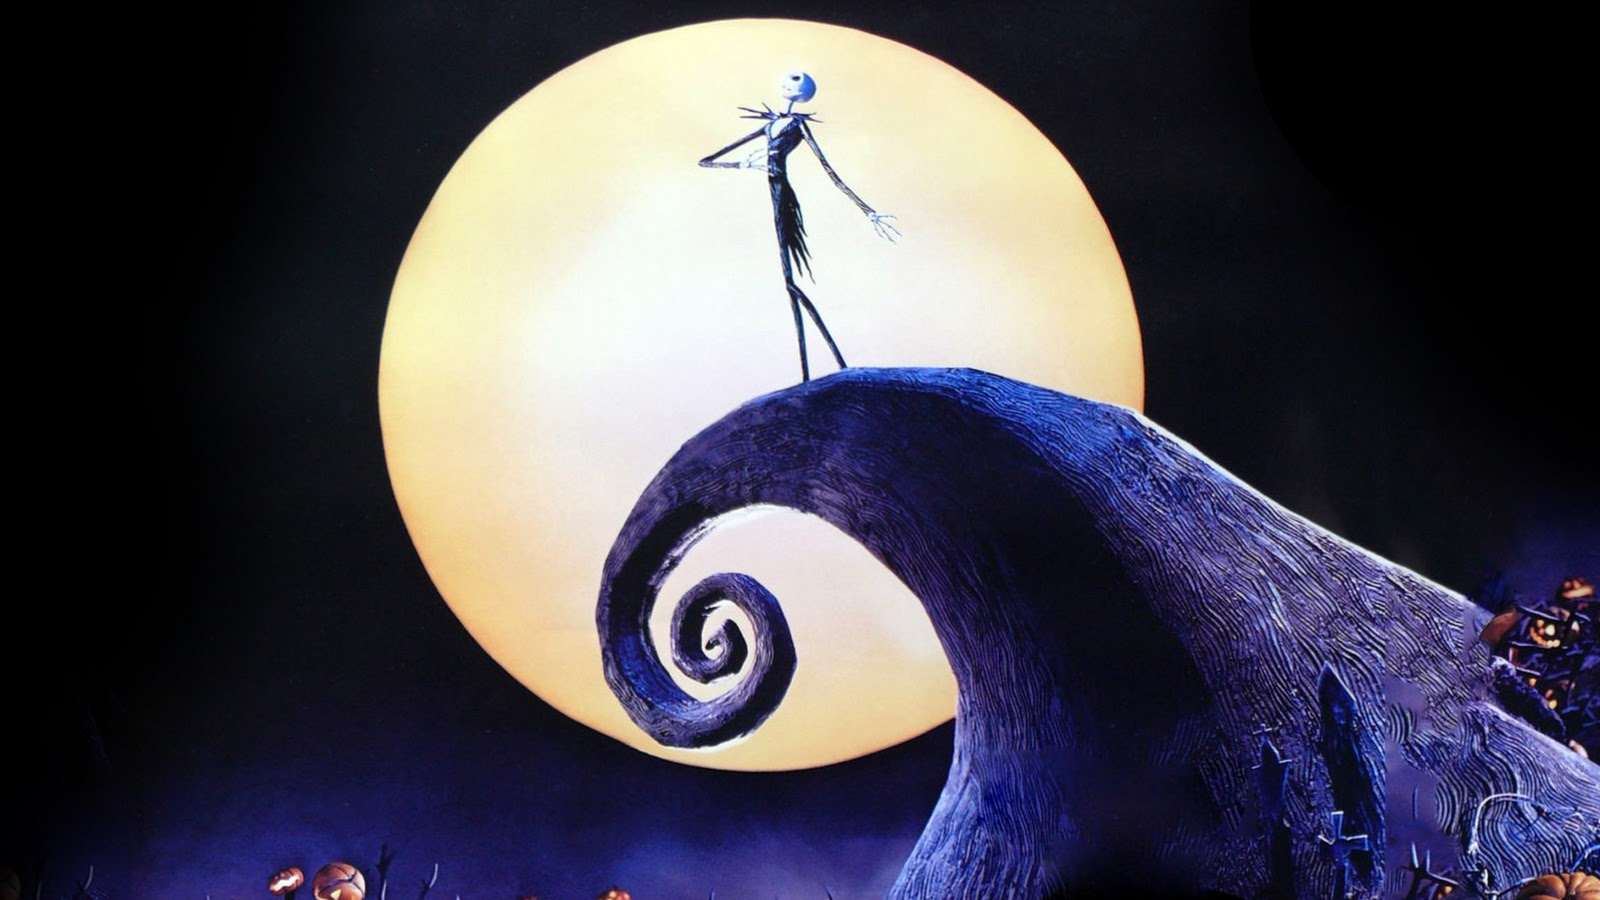 Wallpapers Photo Art The Nightmare Before Christmas Wallpapers 1600x900